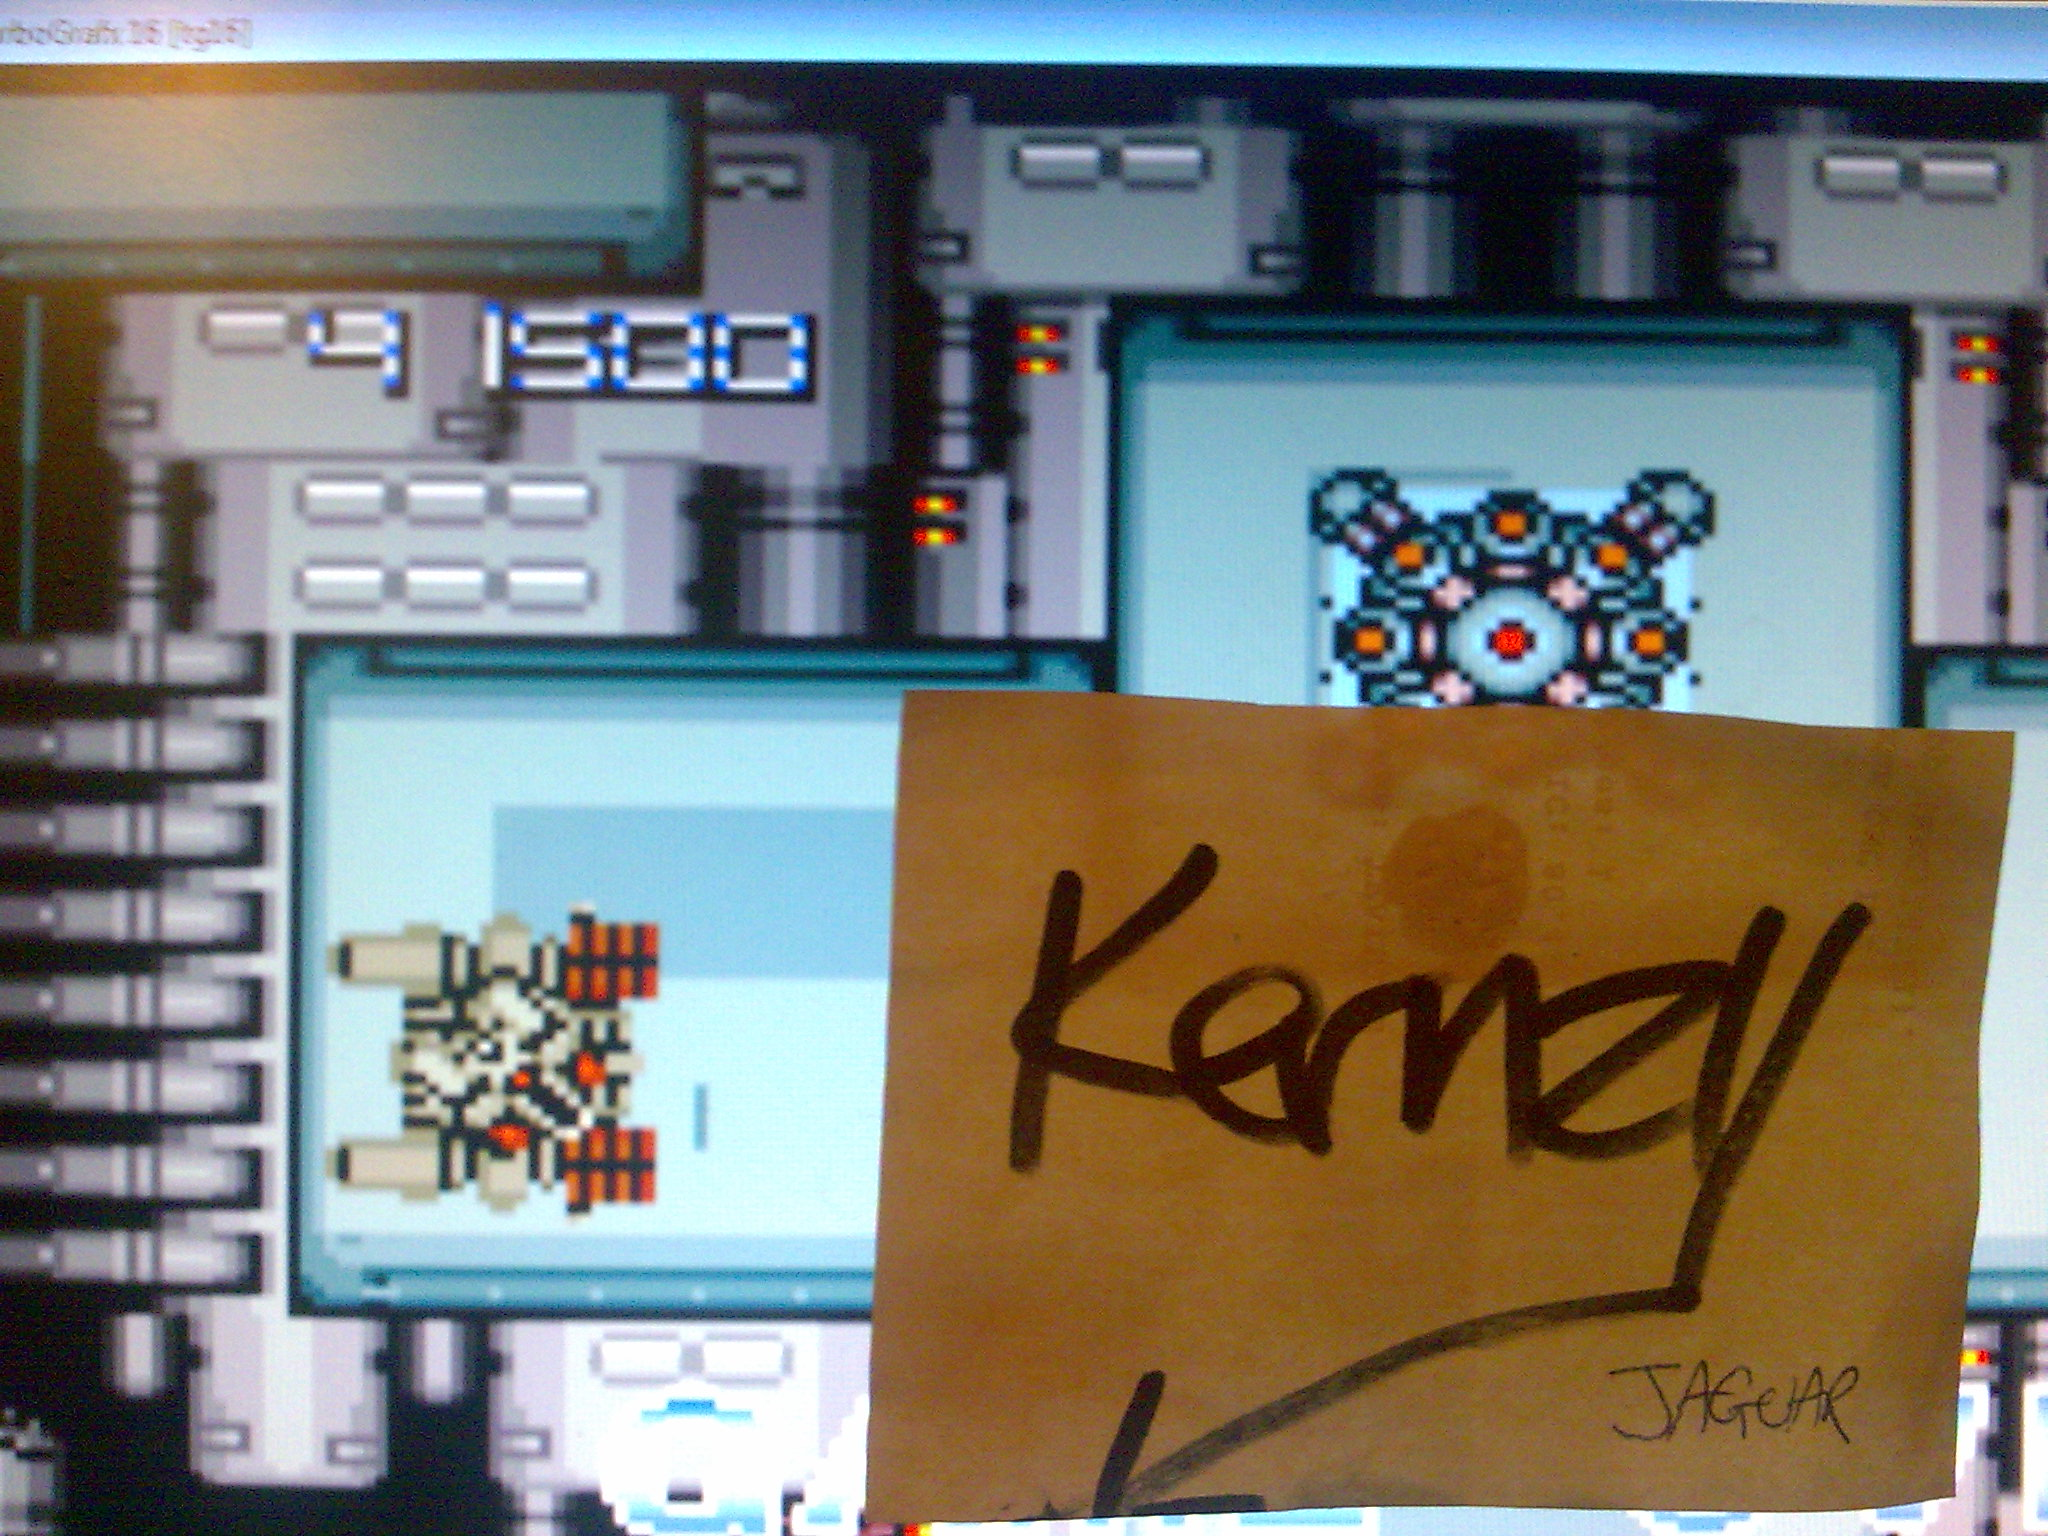 kernzy: Final Blaster (TurboGrafx-16/PC Engine Emulated) 41,500 points on 2014-10-11 13:40:41